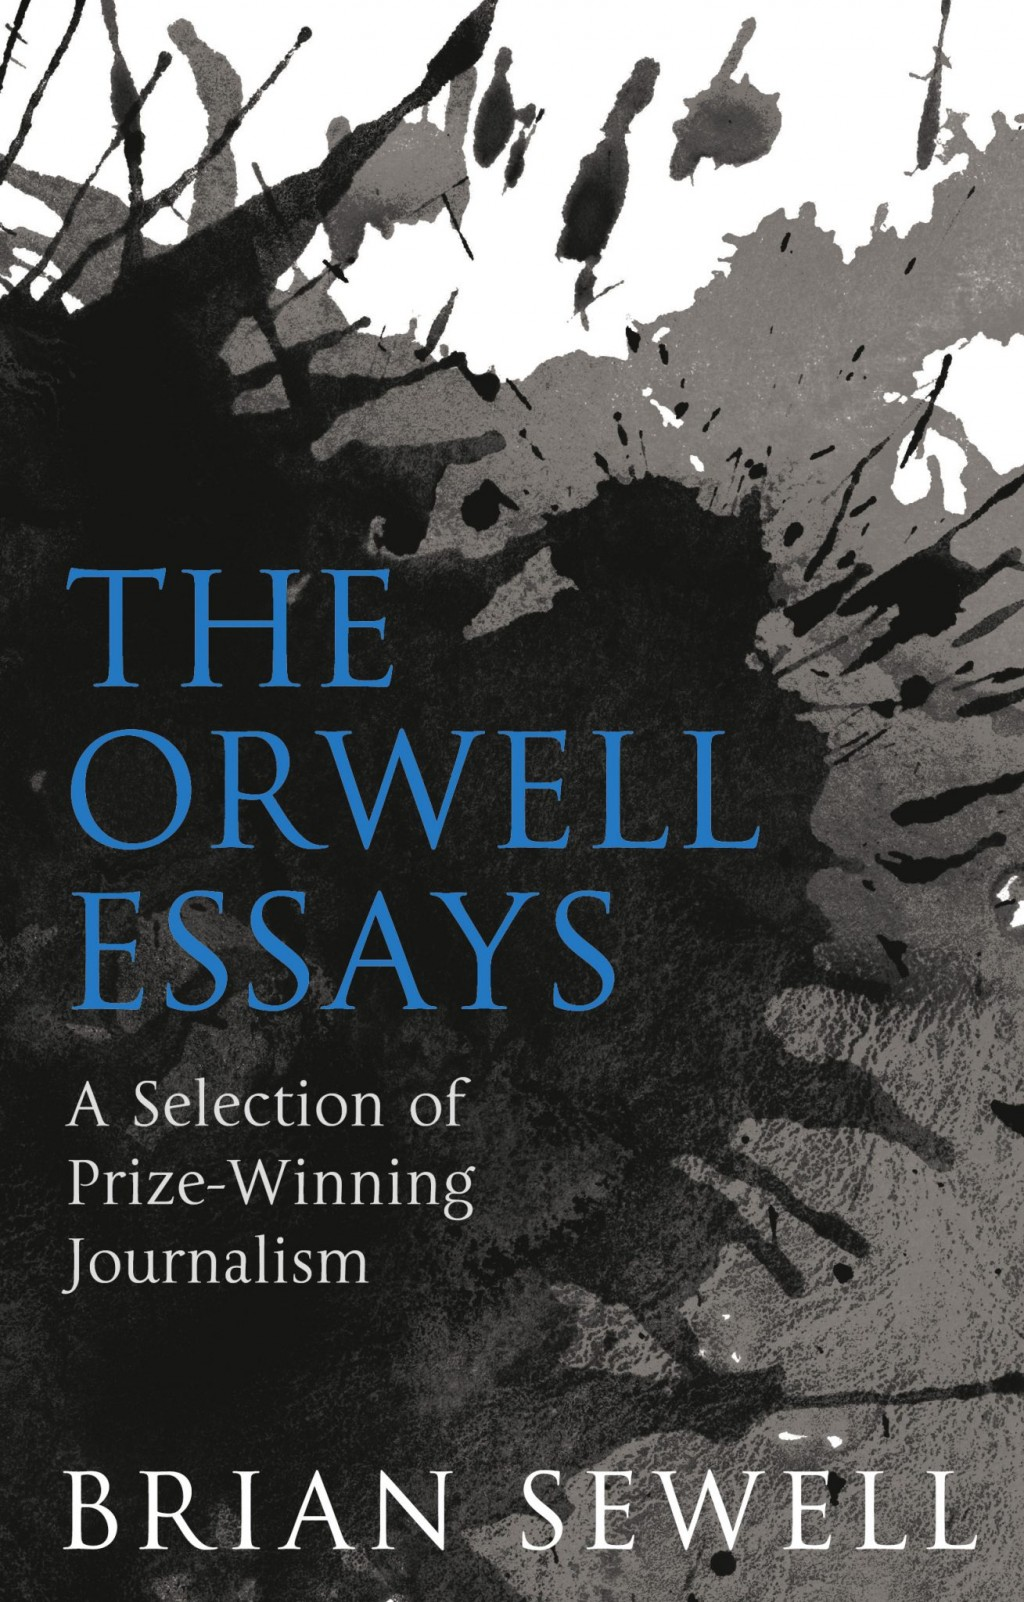 008 Orwell Essays Essay Singular Amazon Pdf Epub Large